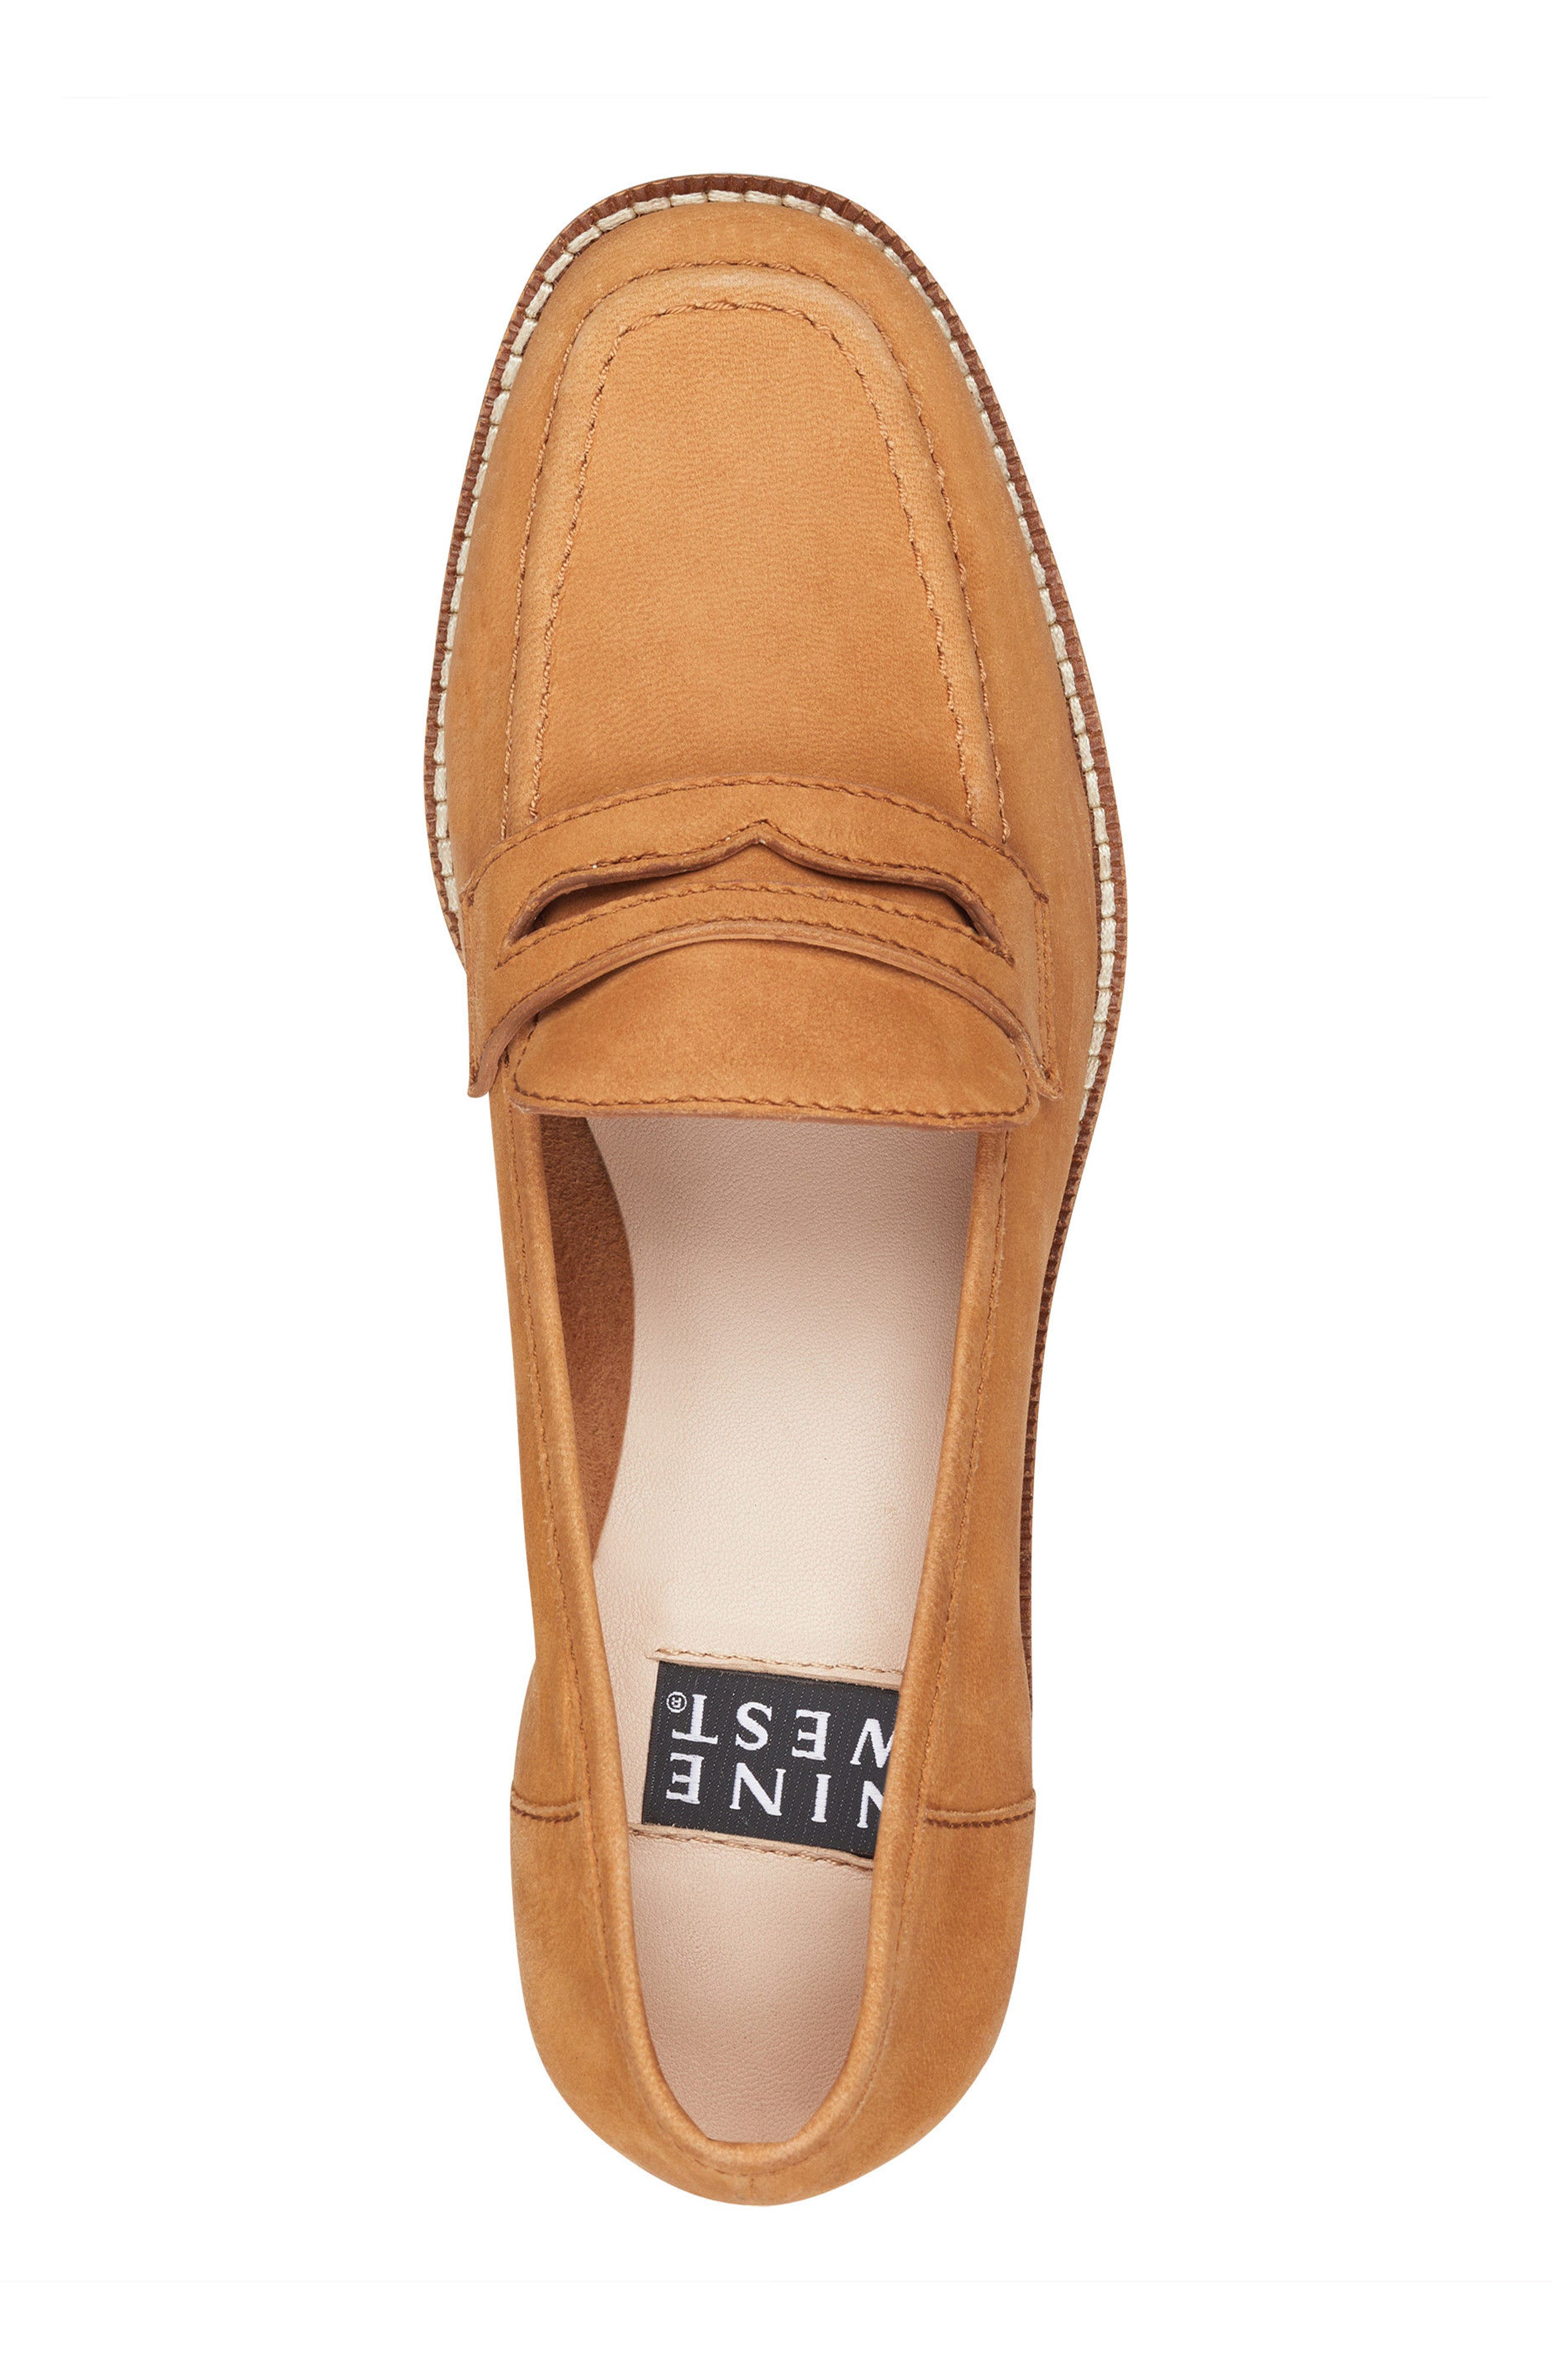 Kimmy - 40th Anniversary Capsule Collection Penny Loafer,                             Alternate thumbnail 5, color,                             Dark Natural Leather